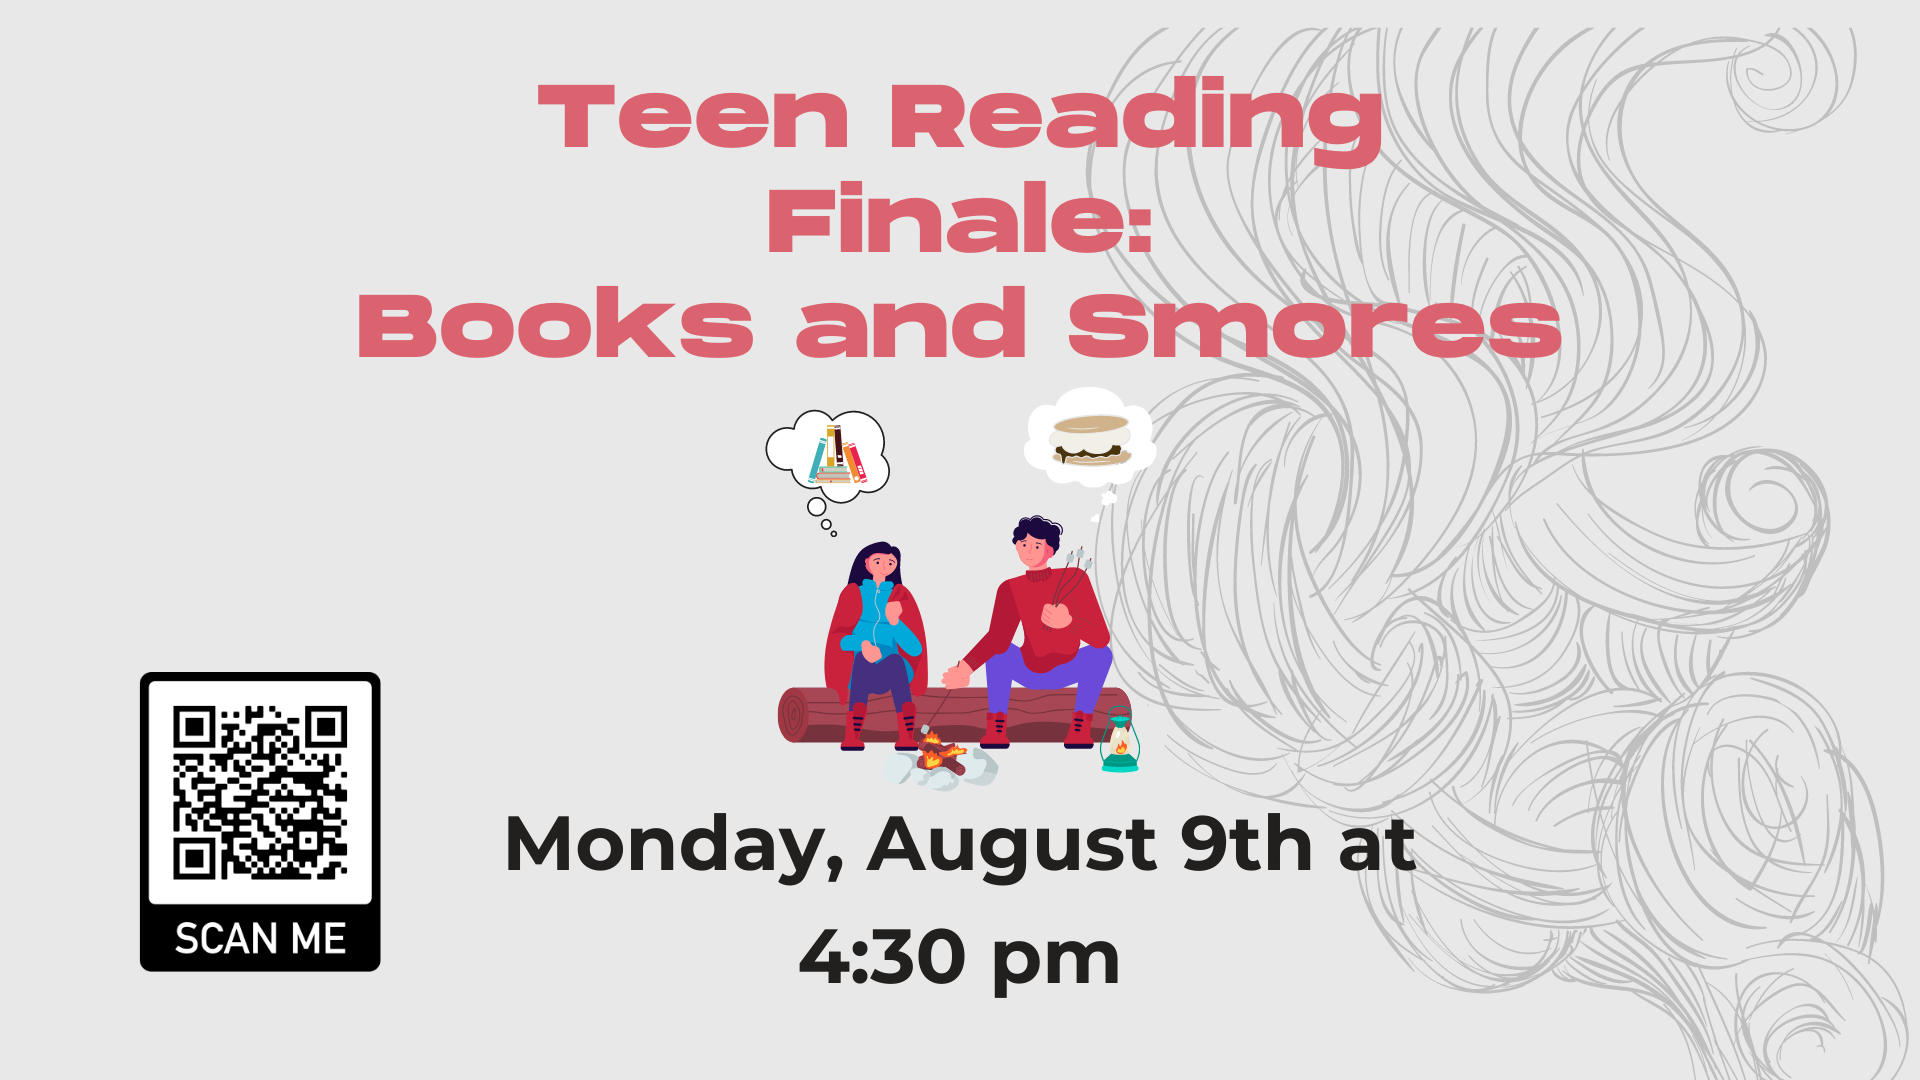 Teen Reading Finale - Books and Smores